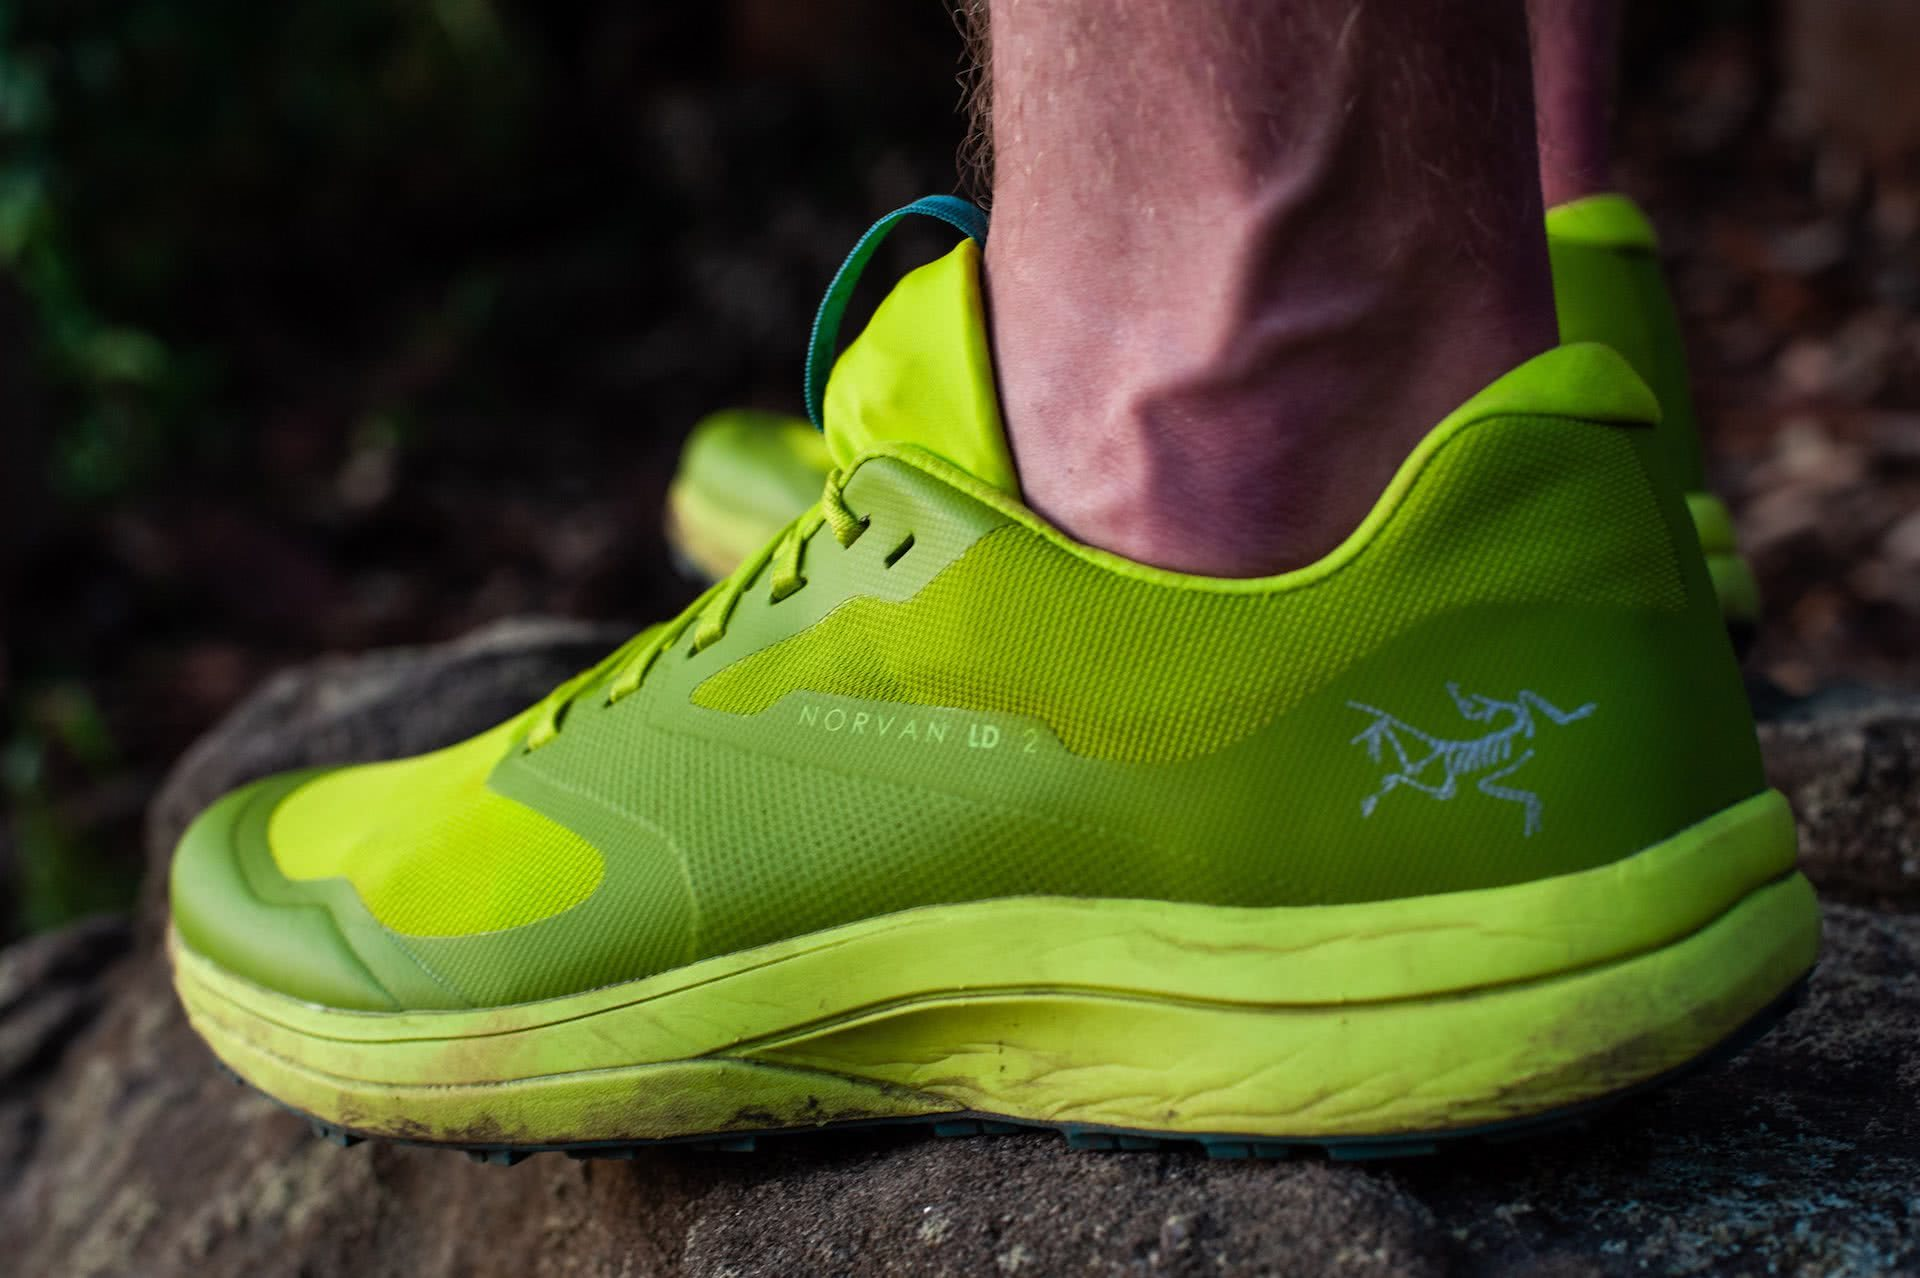 Arc'teryx Norvan LD 2 Trail Running Shoe // Gear Review, photo by Evan Andrews, trail runners, green, LIME GREEN, logo